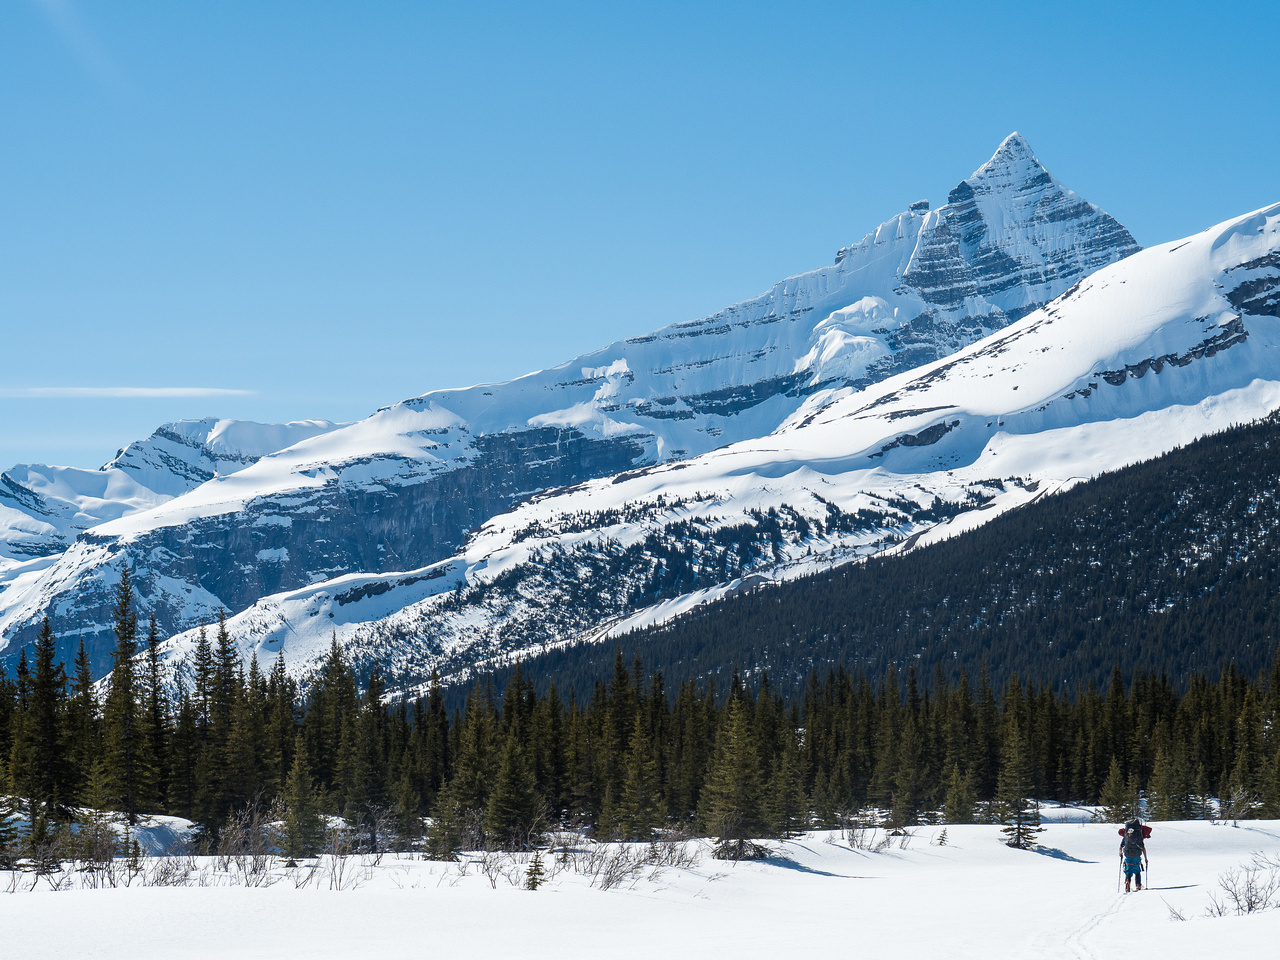 Ben skis down the drainage towards Berg Lake with Whitehorn rising dramatically above him.